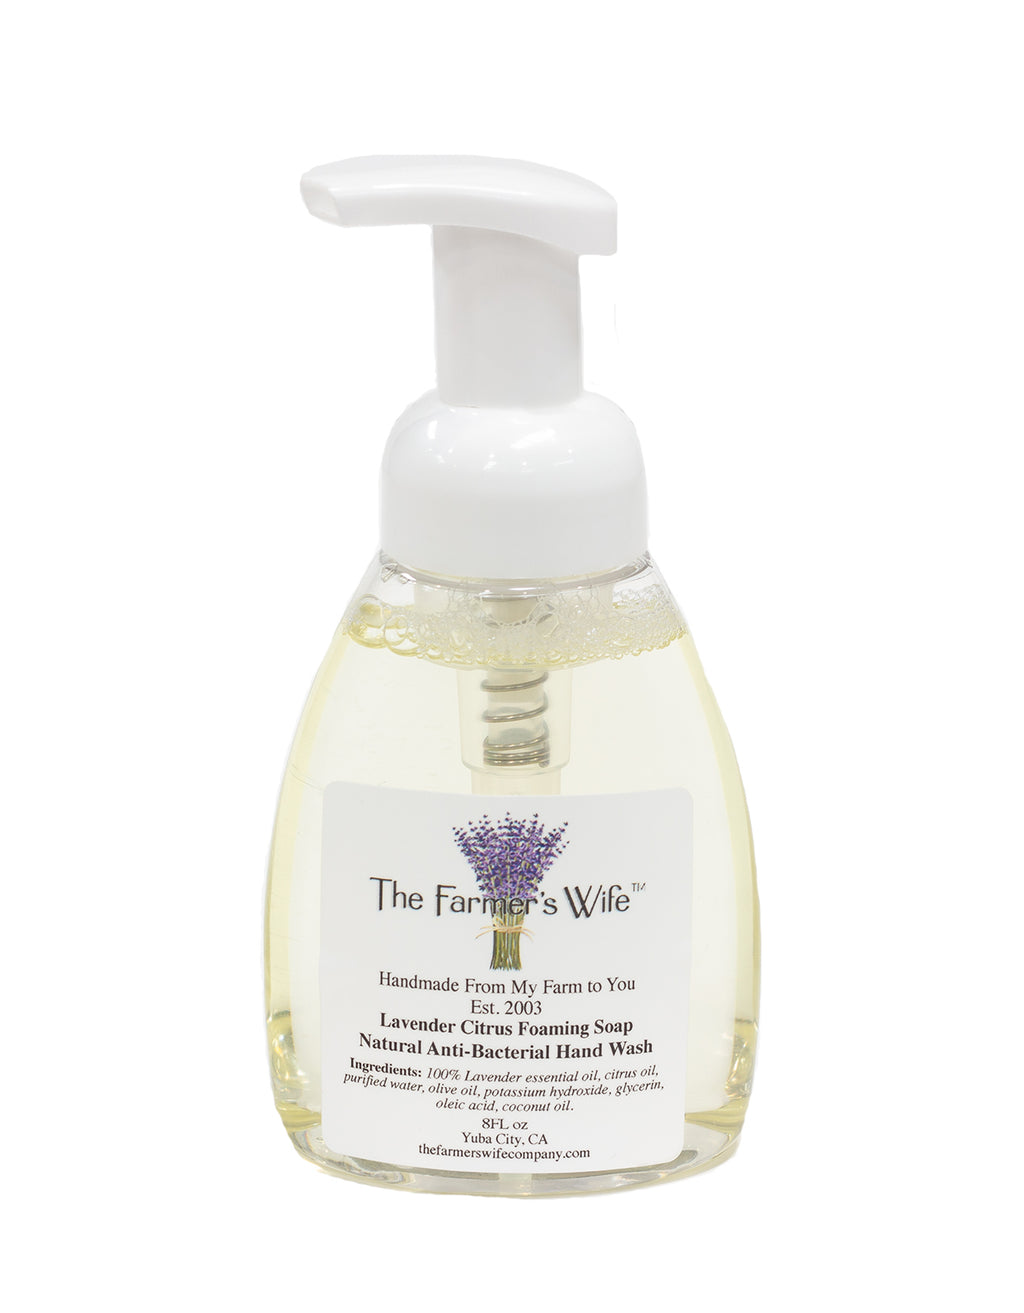 Farmers Wife Lavender Citrus Foaming Hand Soap